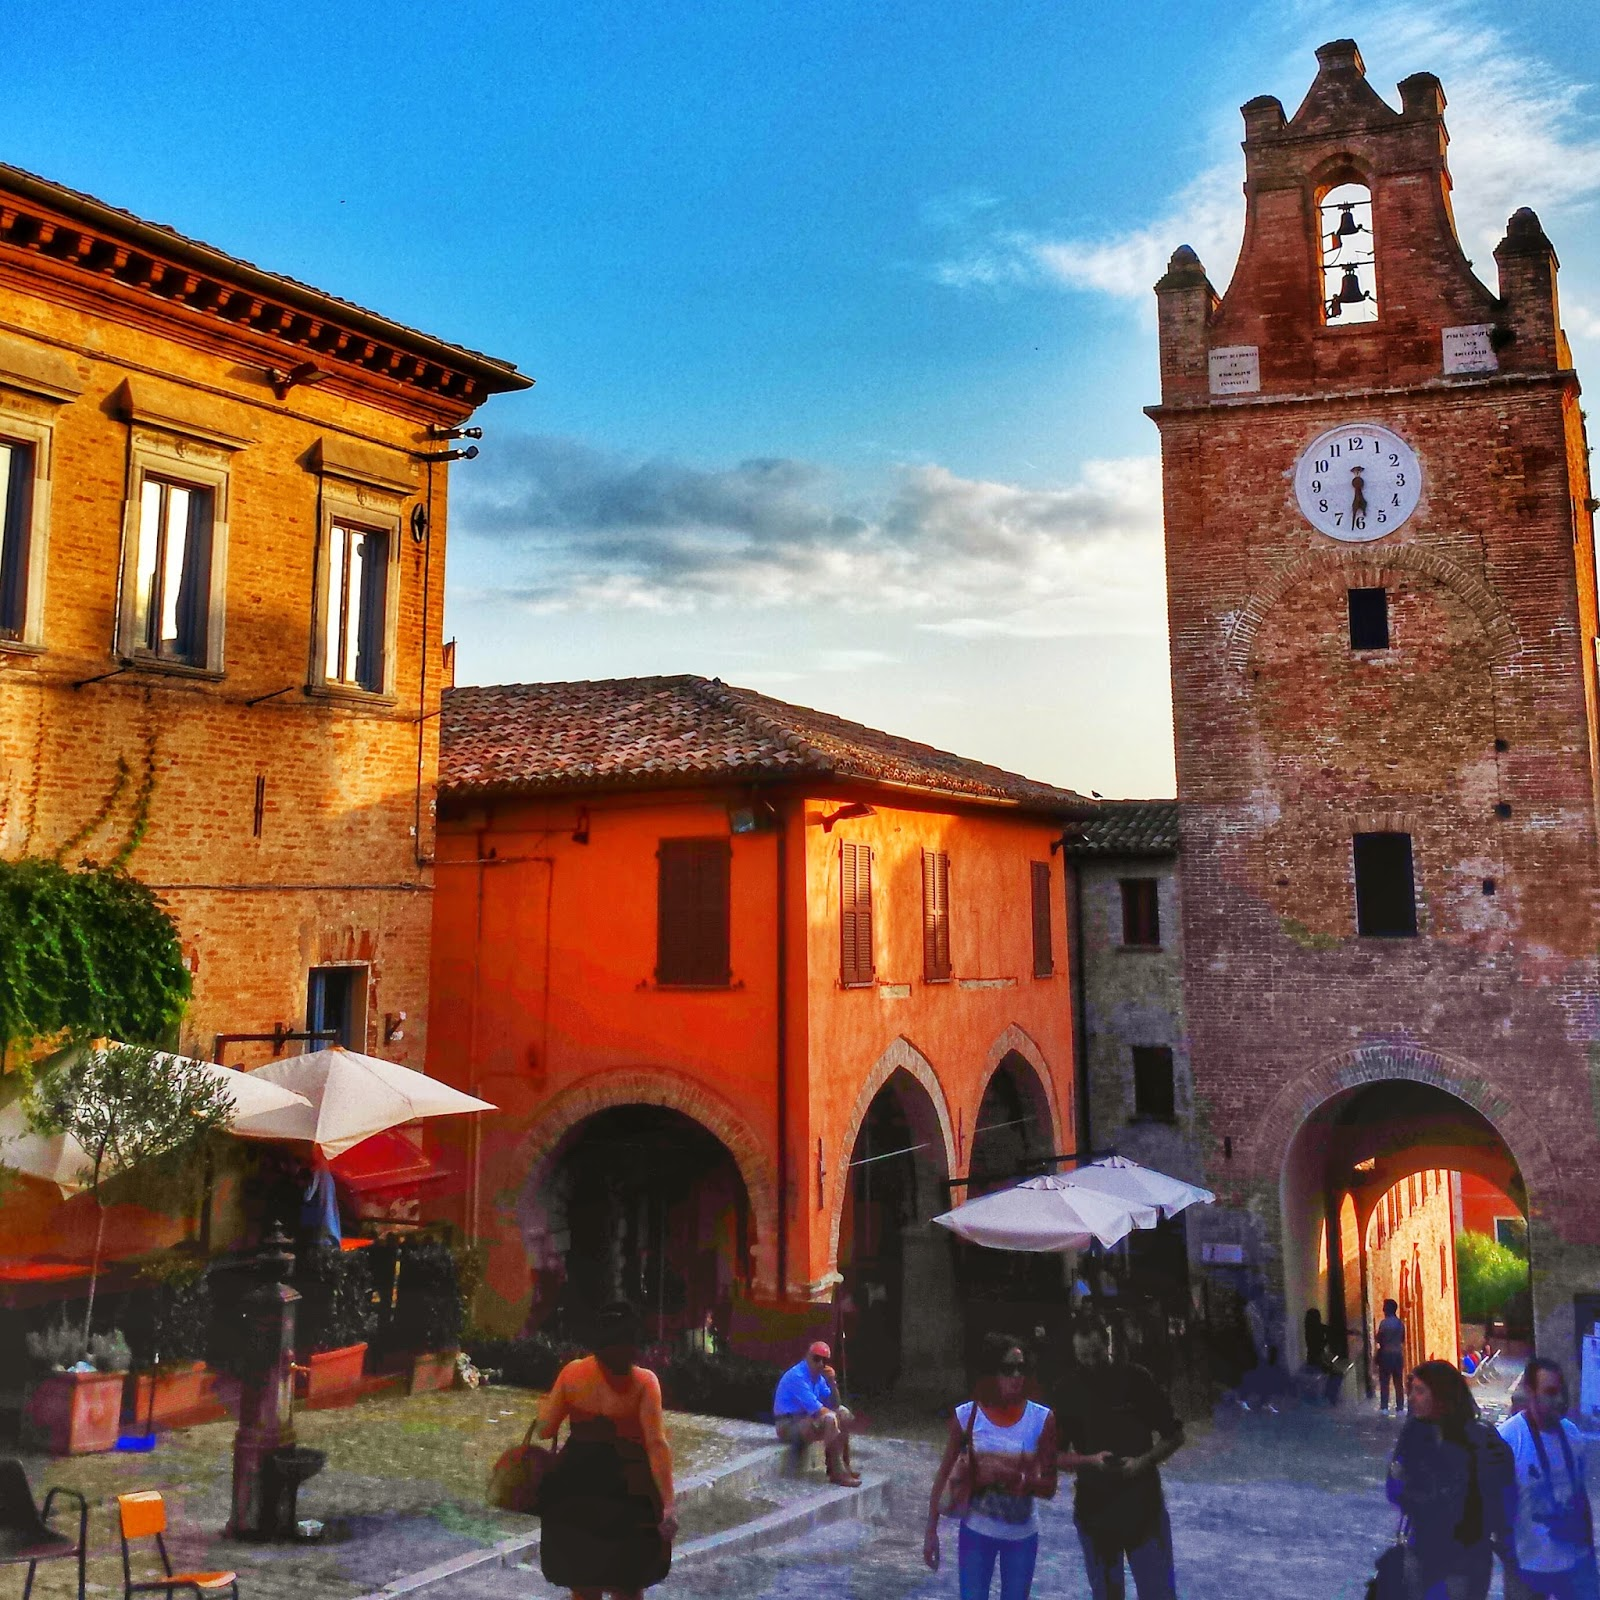 Gradara, Italy, Castles, Medieval fortress, small towns in Le Marche